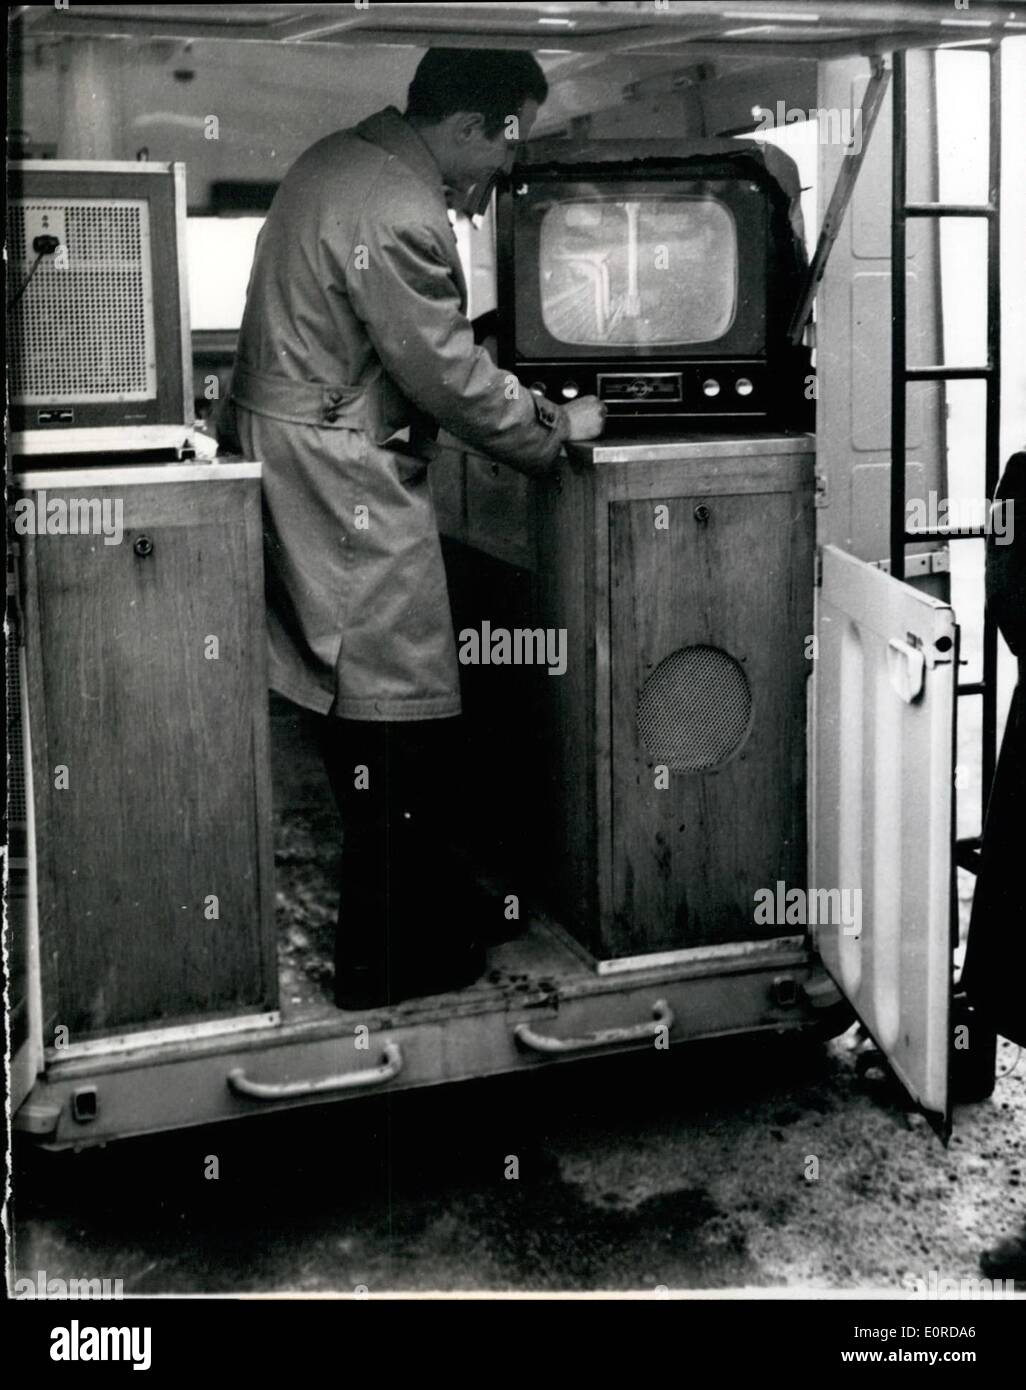 Feb. 02, 1959 - T.V. For Engine Tests: A T.V. camera fixed to any part of the engine under test and connected with a sen play - Stock Image